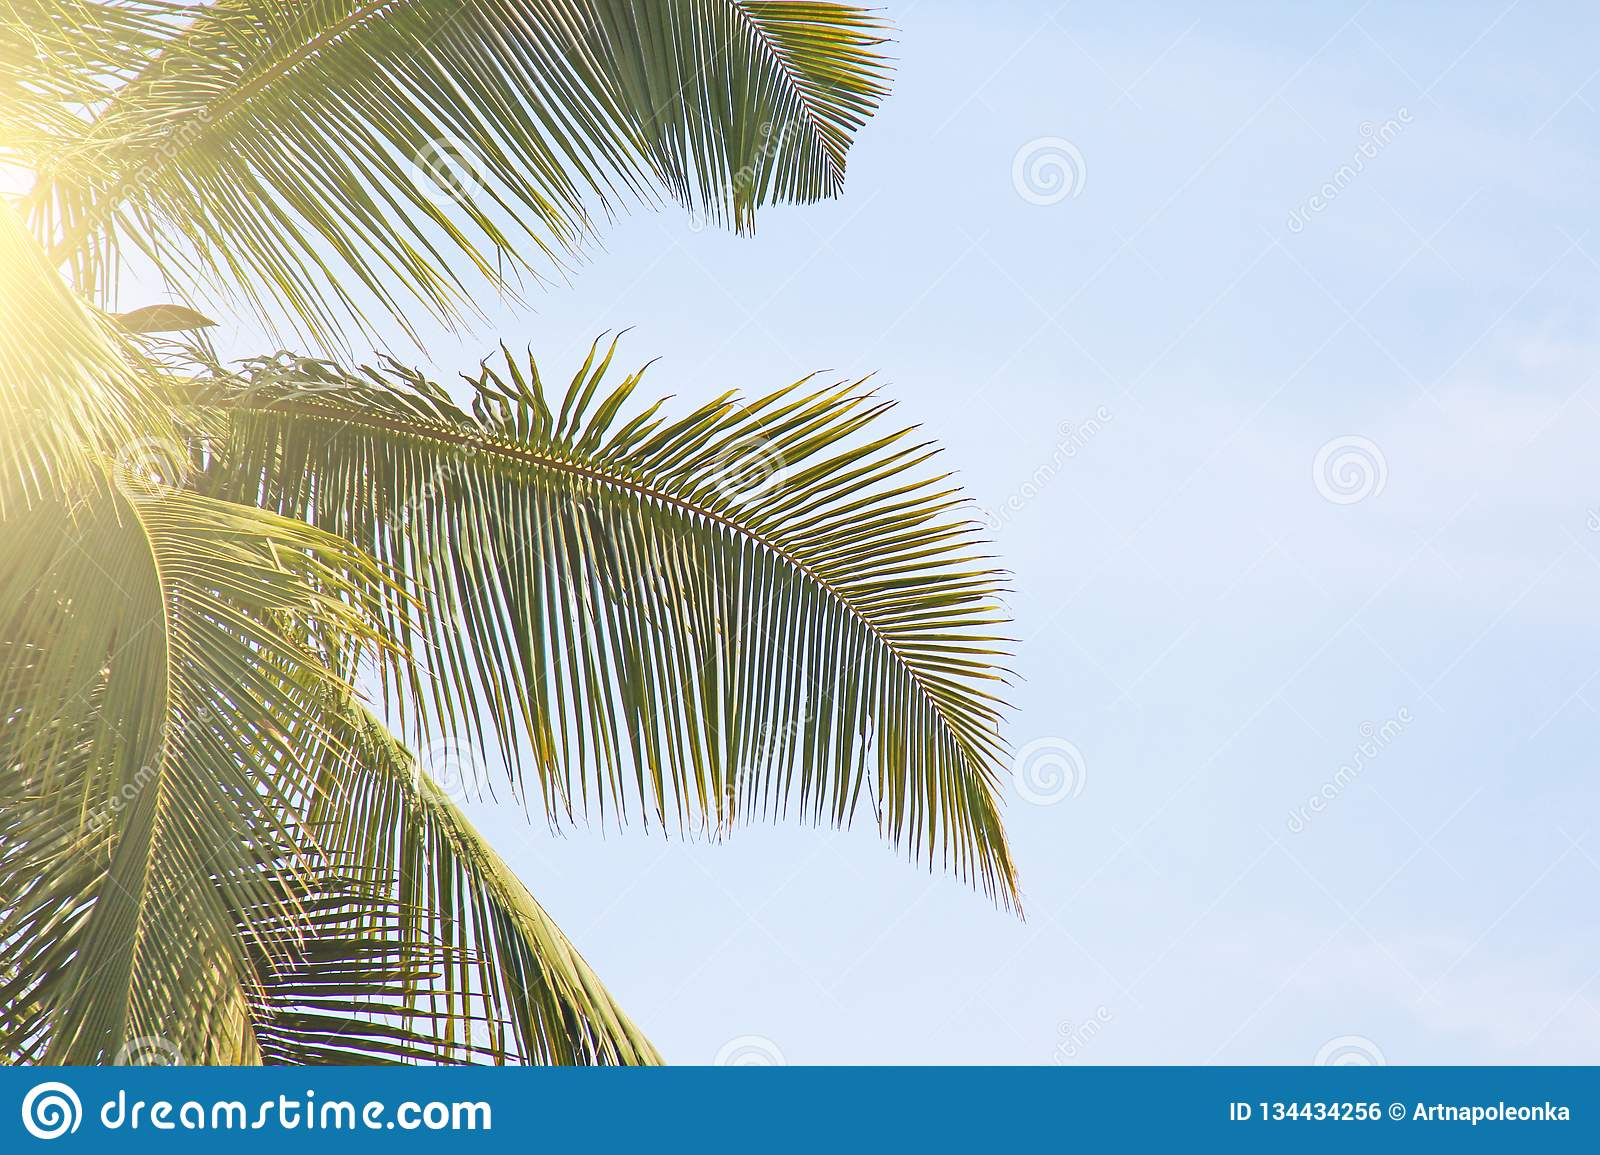 Green Leaves of a palm tree, blue sky and the sun. Exotic Tropical background. Palms in India, Goa